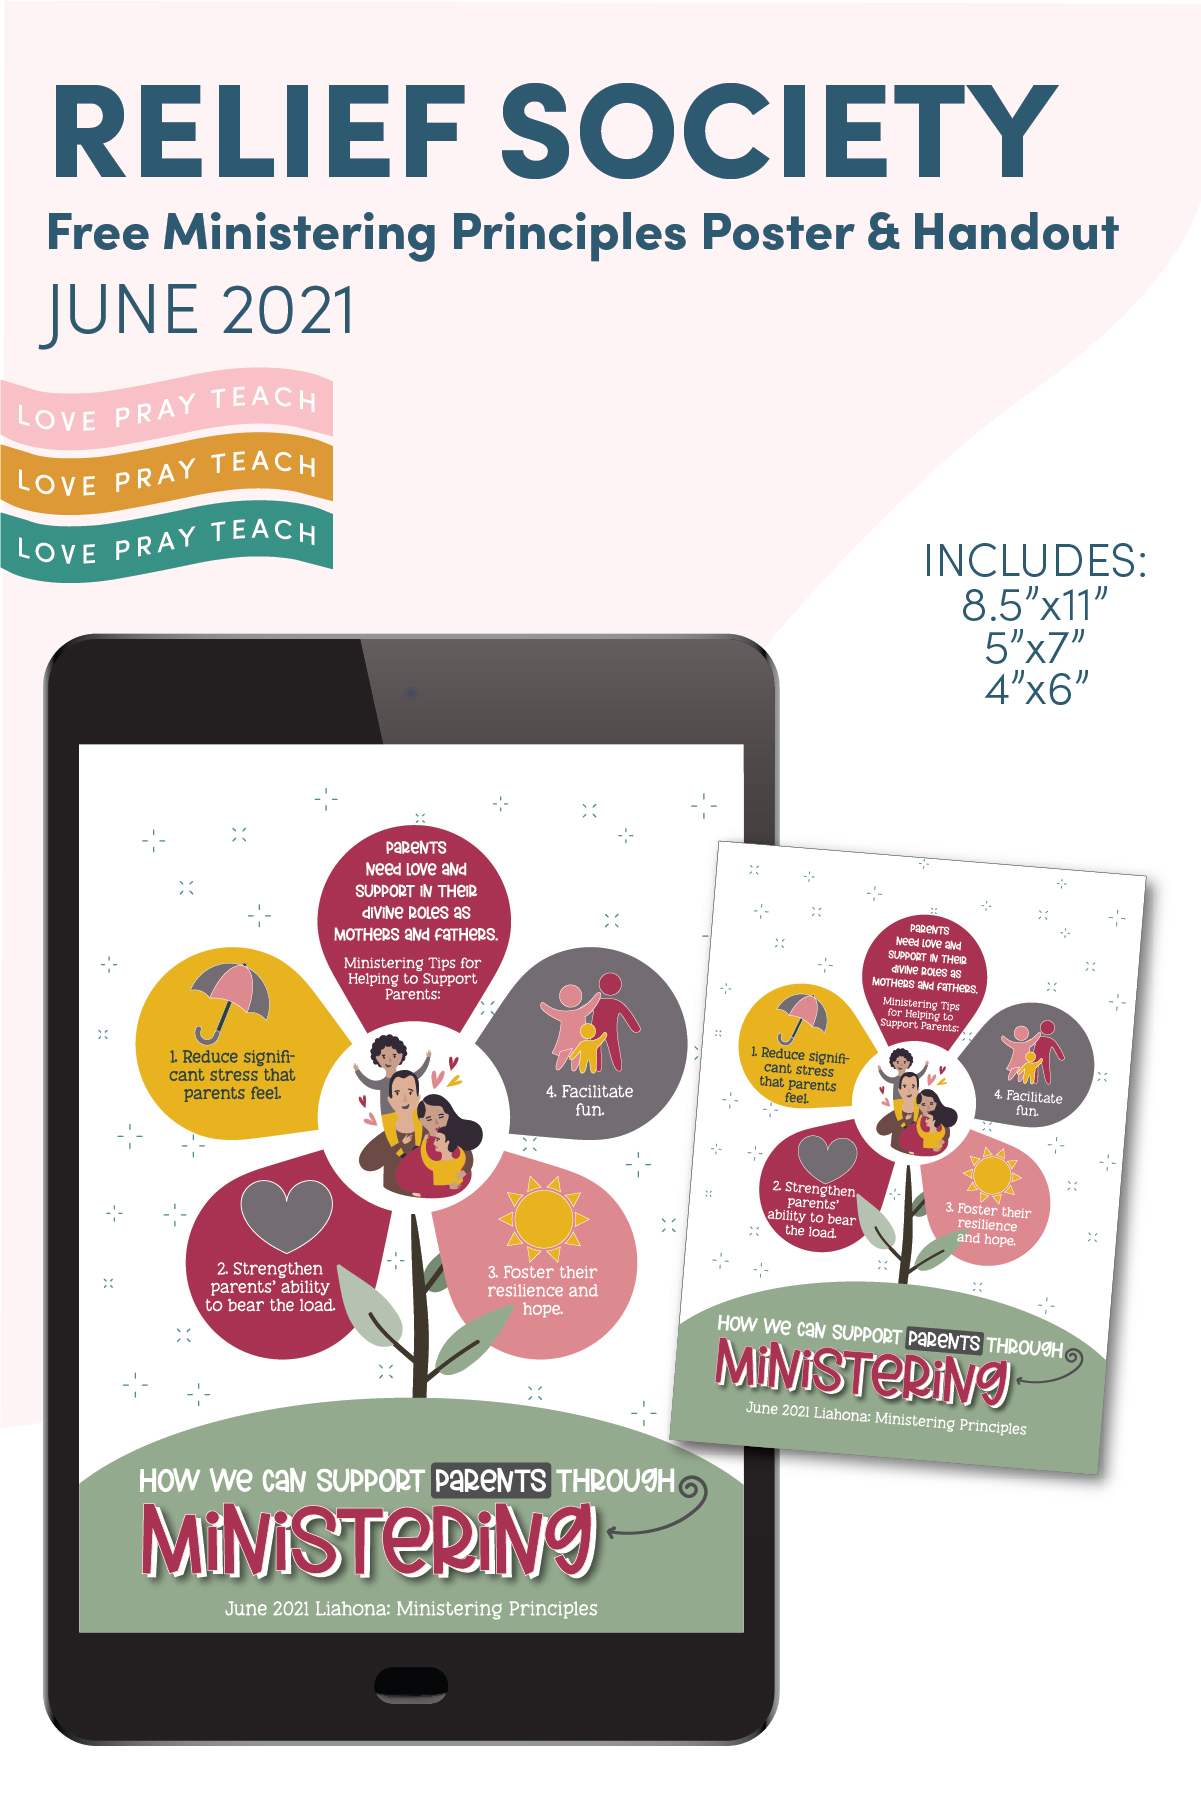 June 2021 Ministering Principle Handout and Posters for Relief Society www.LovePrayTeach.com